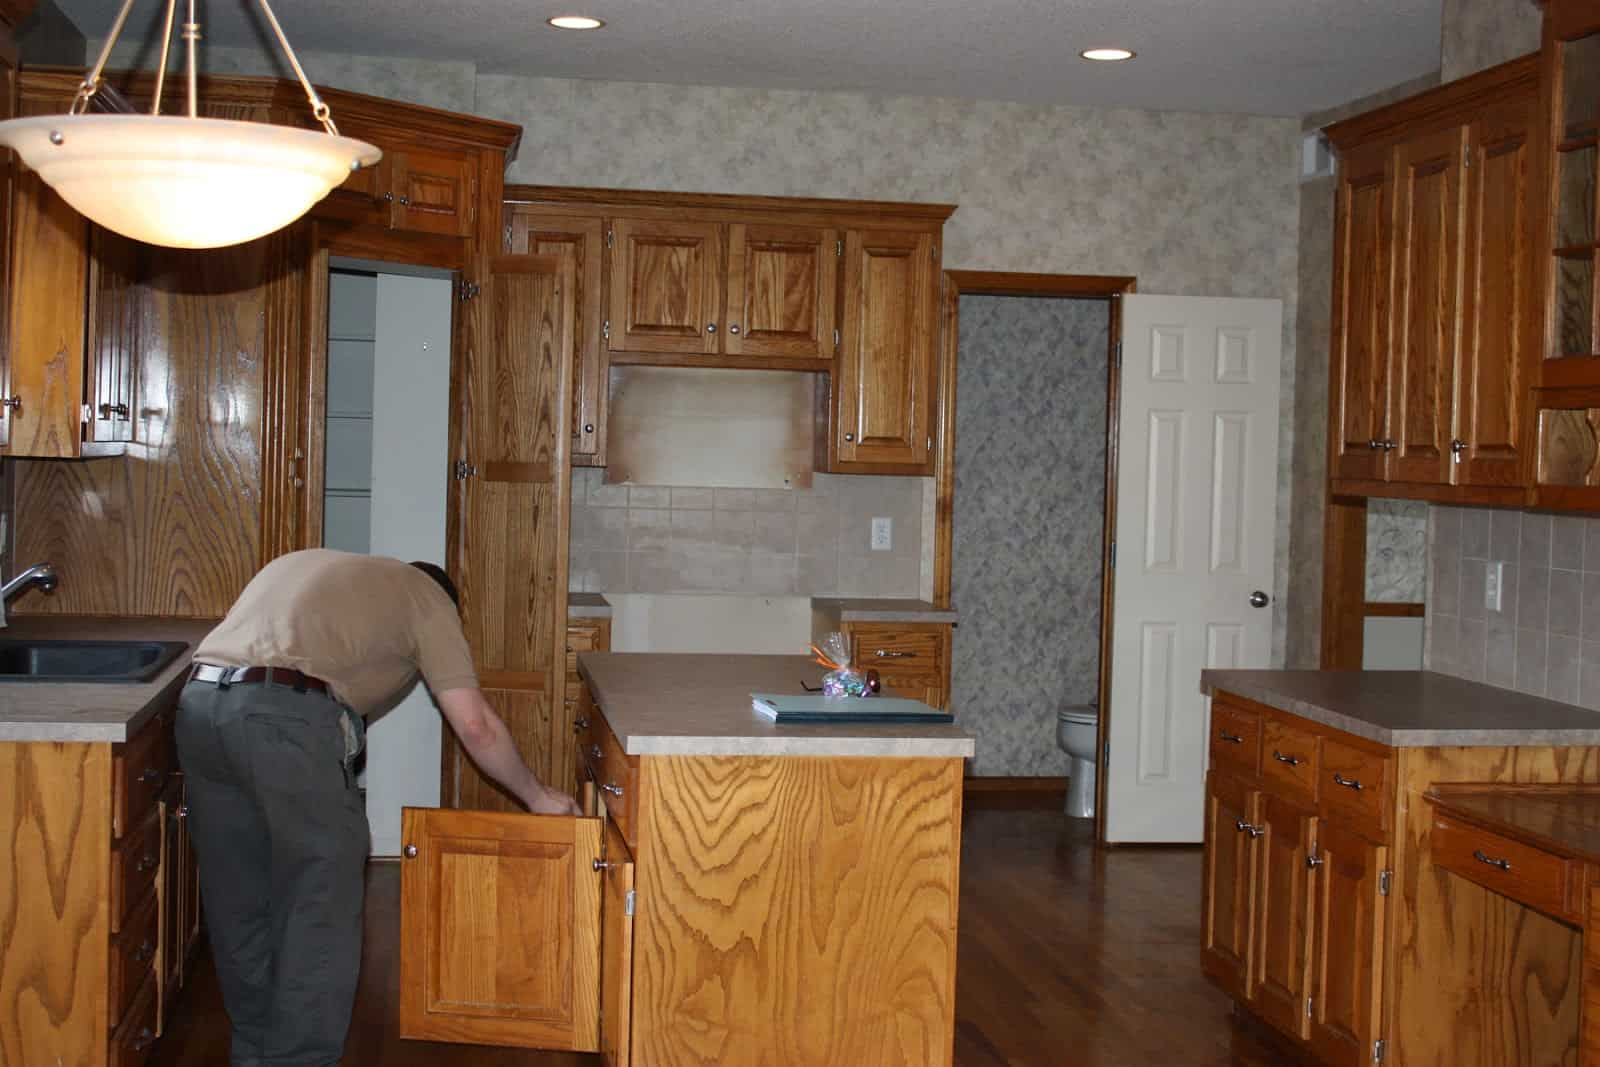 & $500 diy kitchen remodel